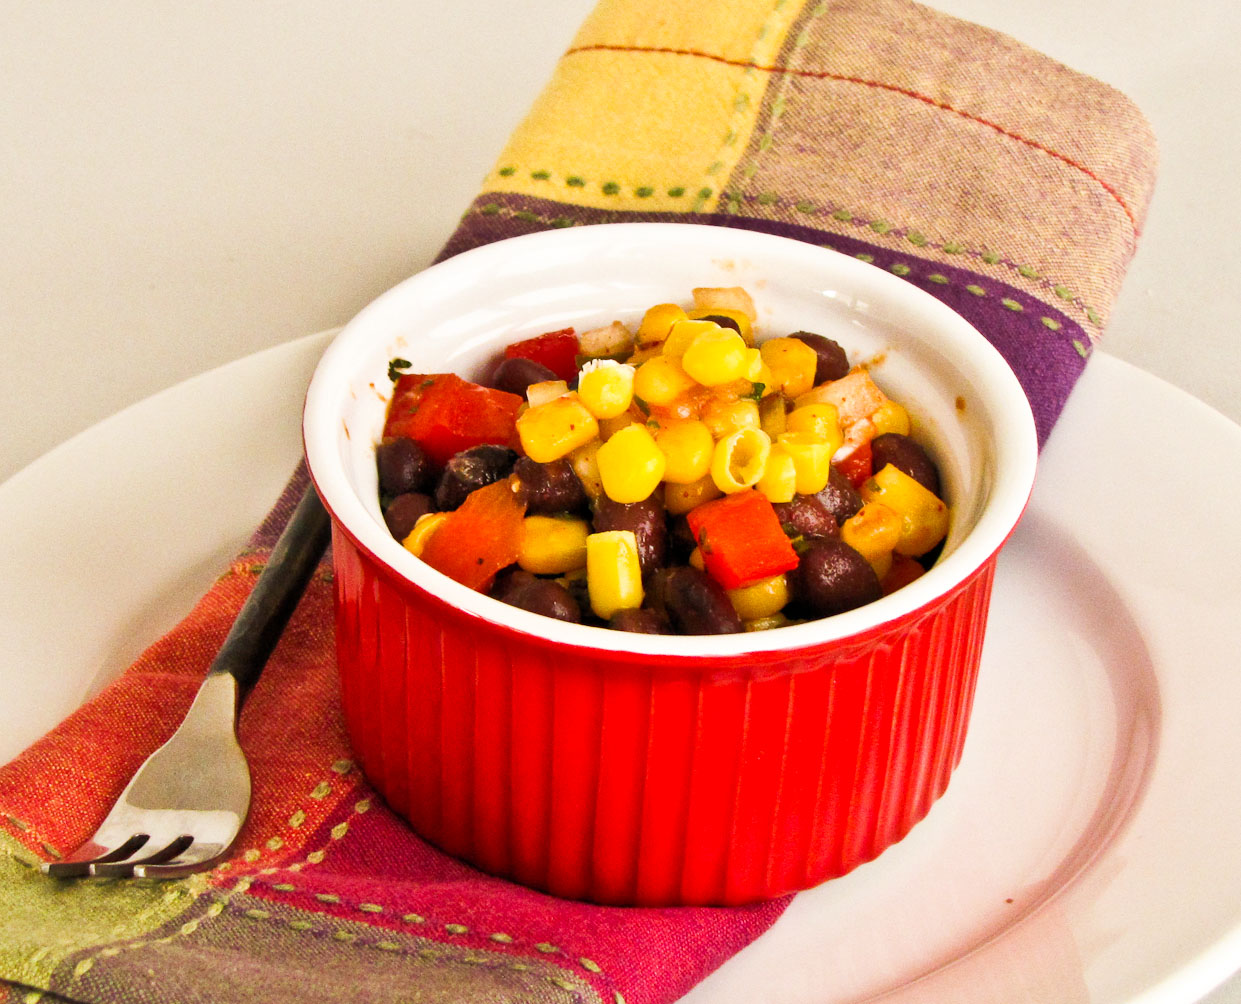 OnTheMove-In the Galley: A Southwest Corn Salad with Black